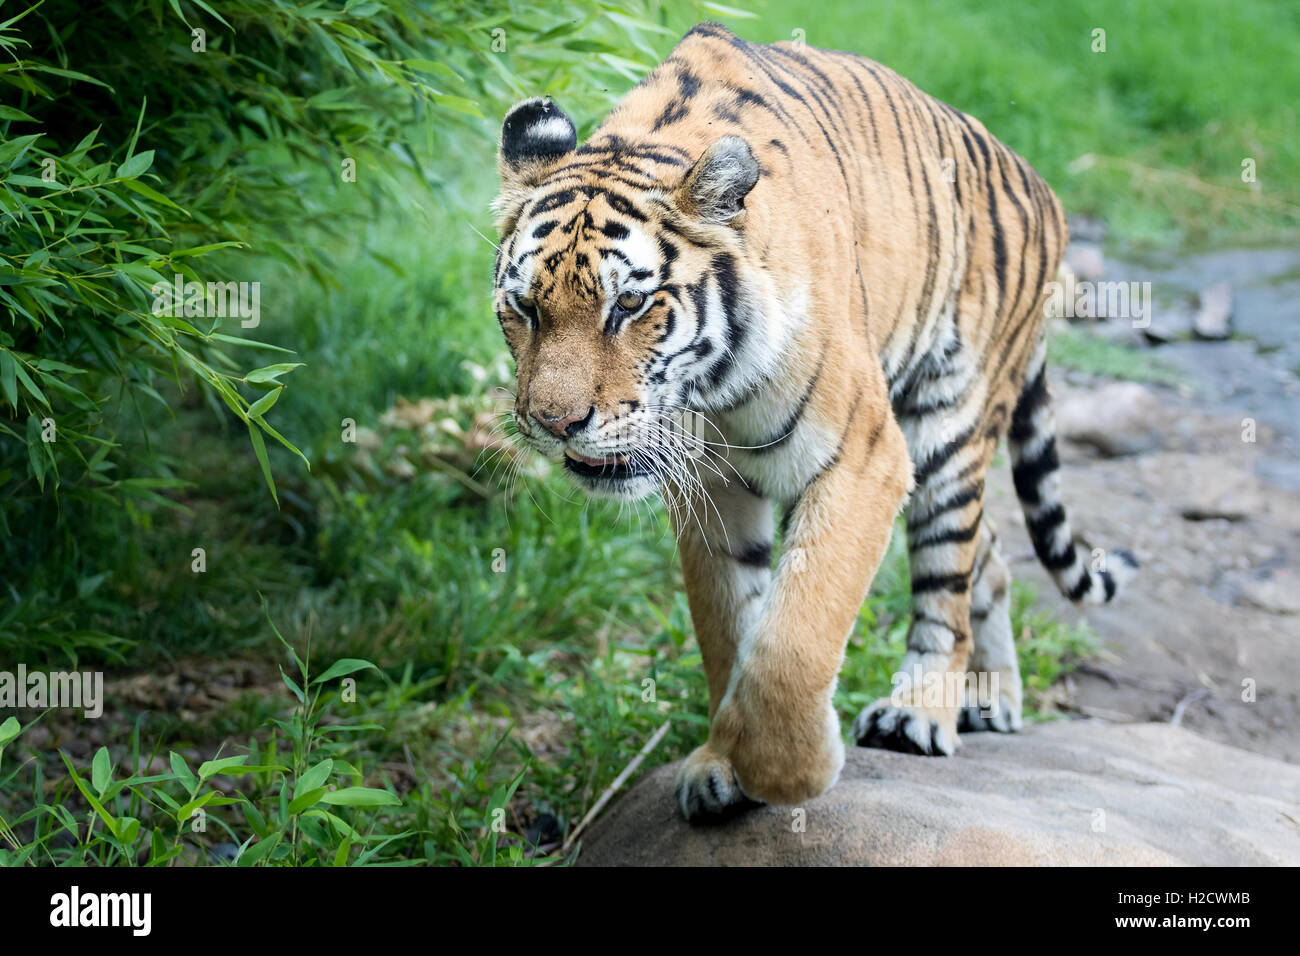 A tiger walking in a field. - Stock Image